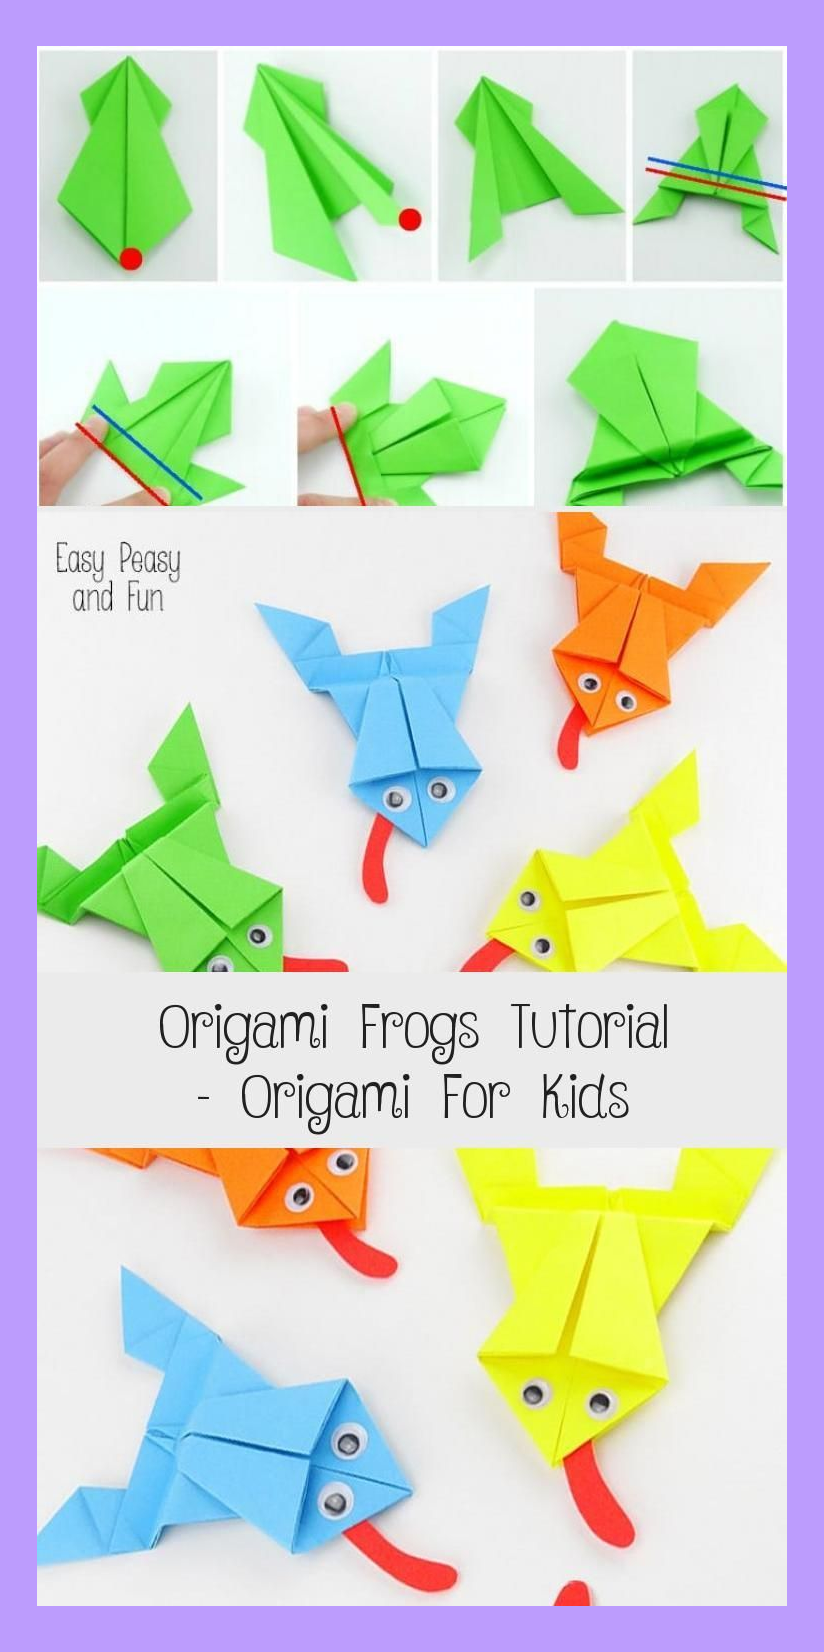 Photo of Origami Frogs Tutorial – Origami for Kids #origamiPikachu #origamiBird #origamiD…